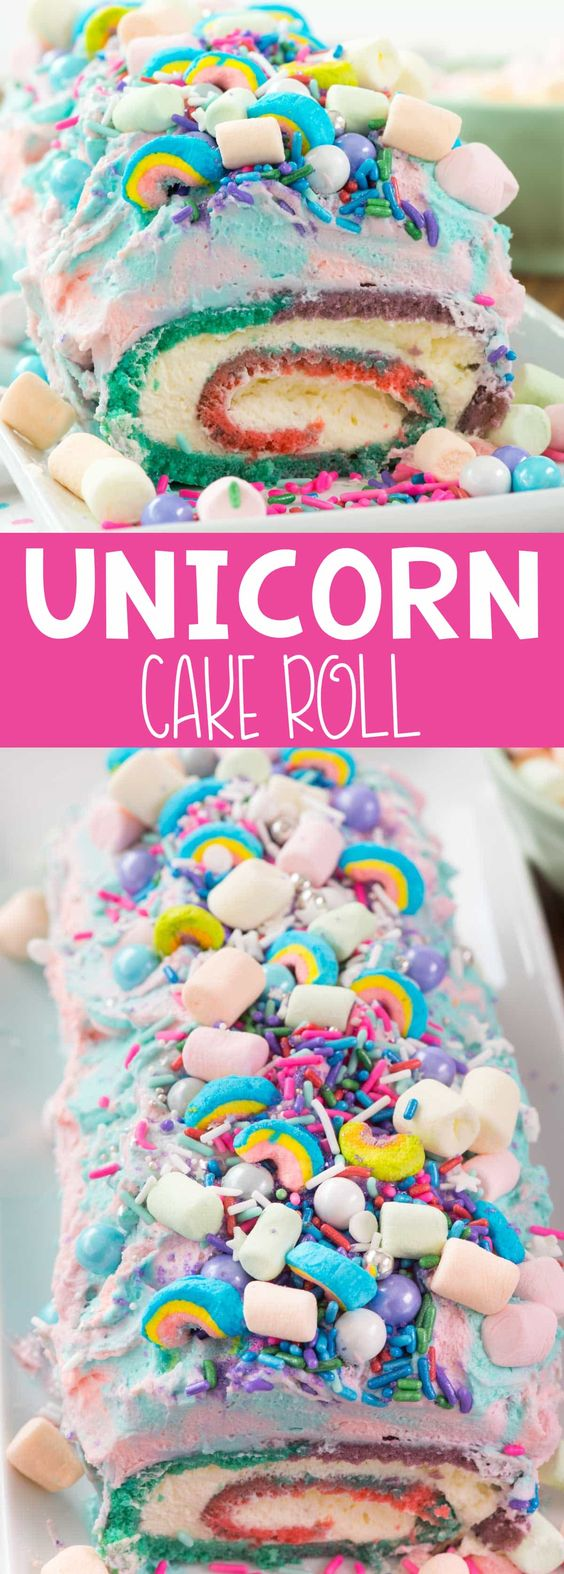 Unicorn desserts for a unicorn party: Unicorn Cake Roll